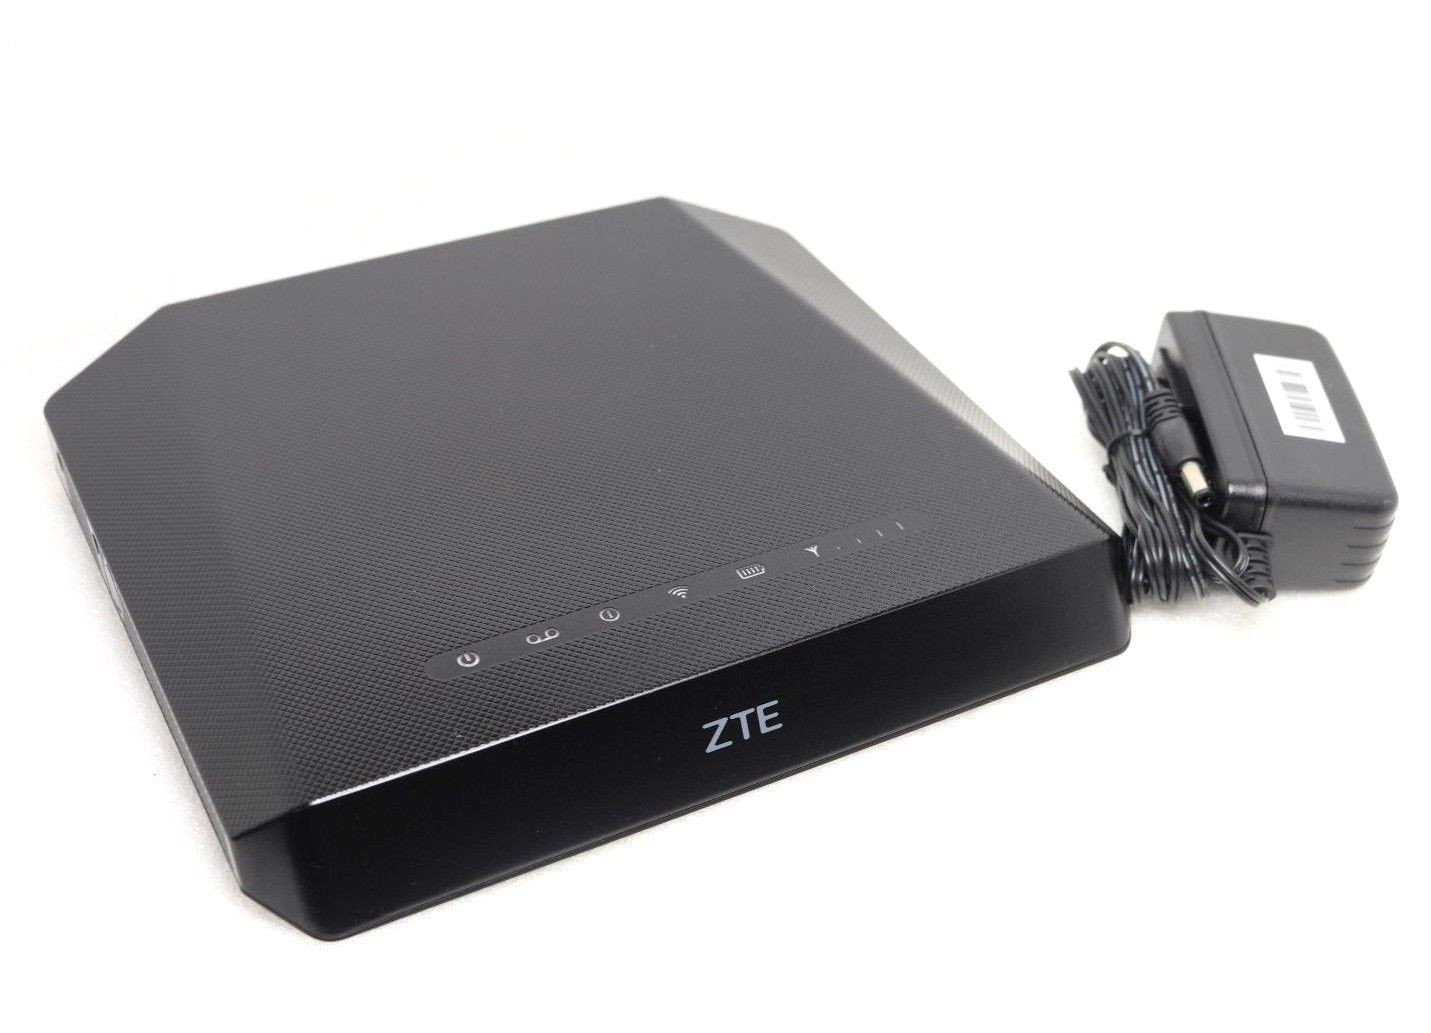 ZTE MF288 Turbo/Rocket/Smart Hub 4G LTE (GSM UNLOCKED) Phone Hotspot WiFi Router